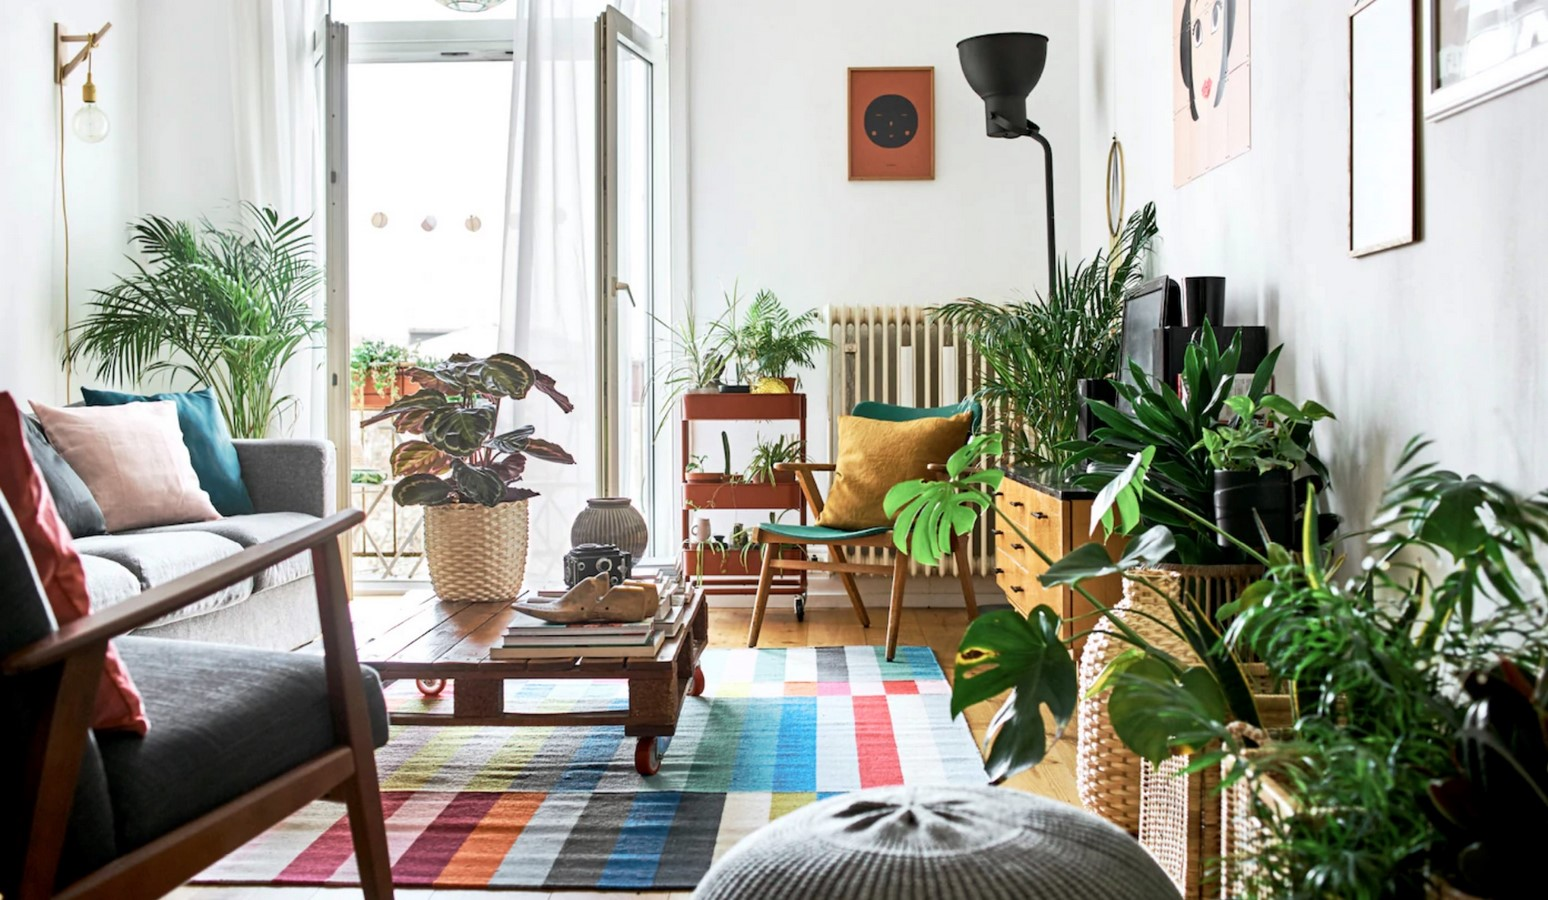 10 Tips to Renovate your House without hampering your budget - Sheet22